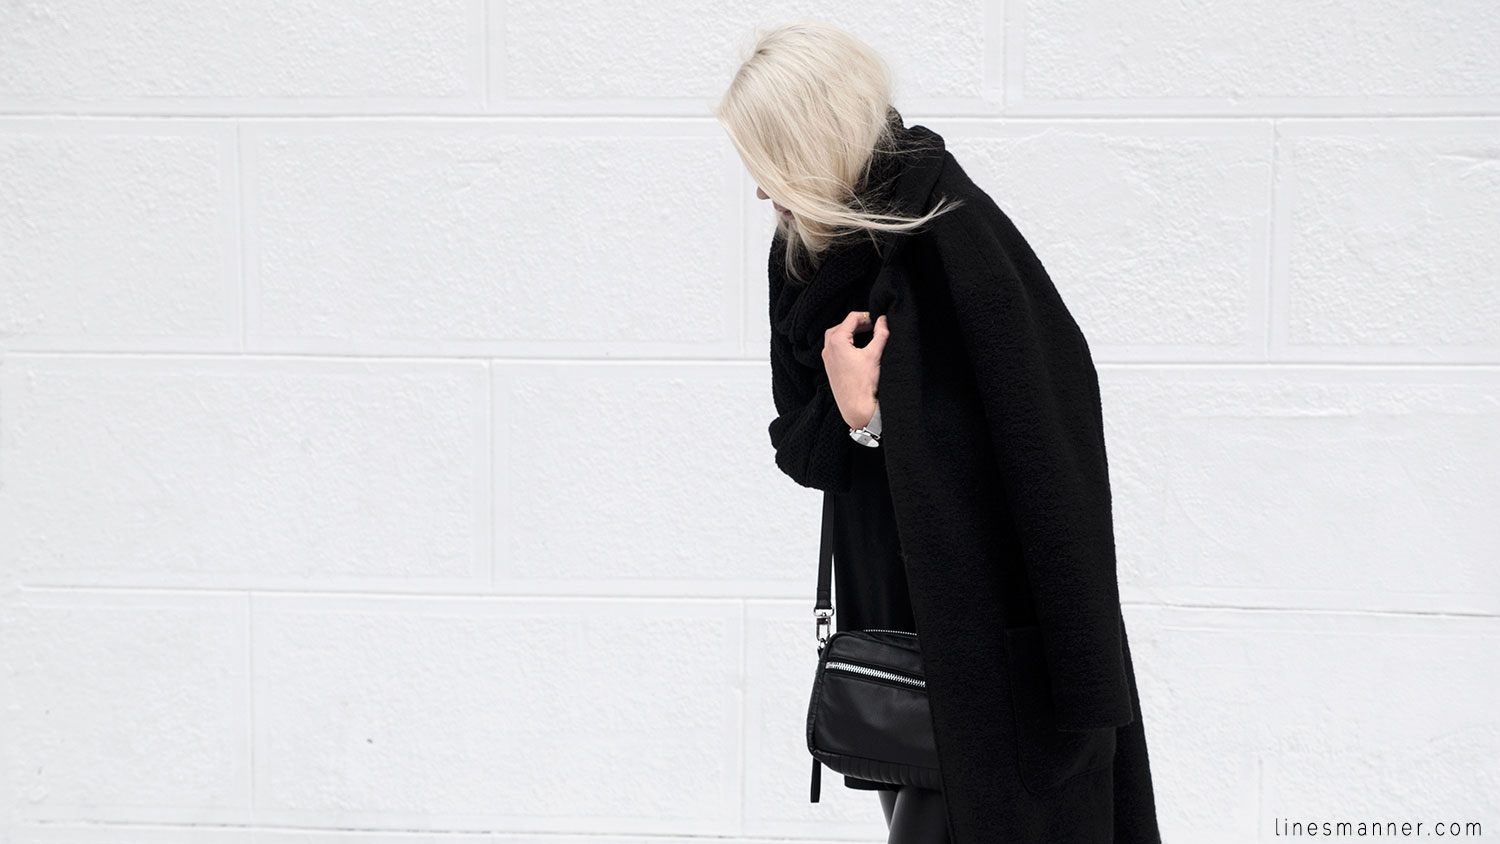 Lines-Manner-All_black_everything-monochrome-essentials-oversize-fit-textures-minimal-details-basics-staples-kayering-bundled-enveloped-silver-leather-6